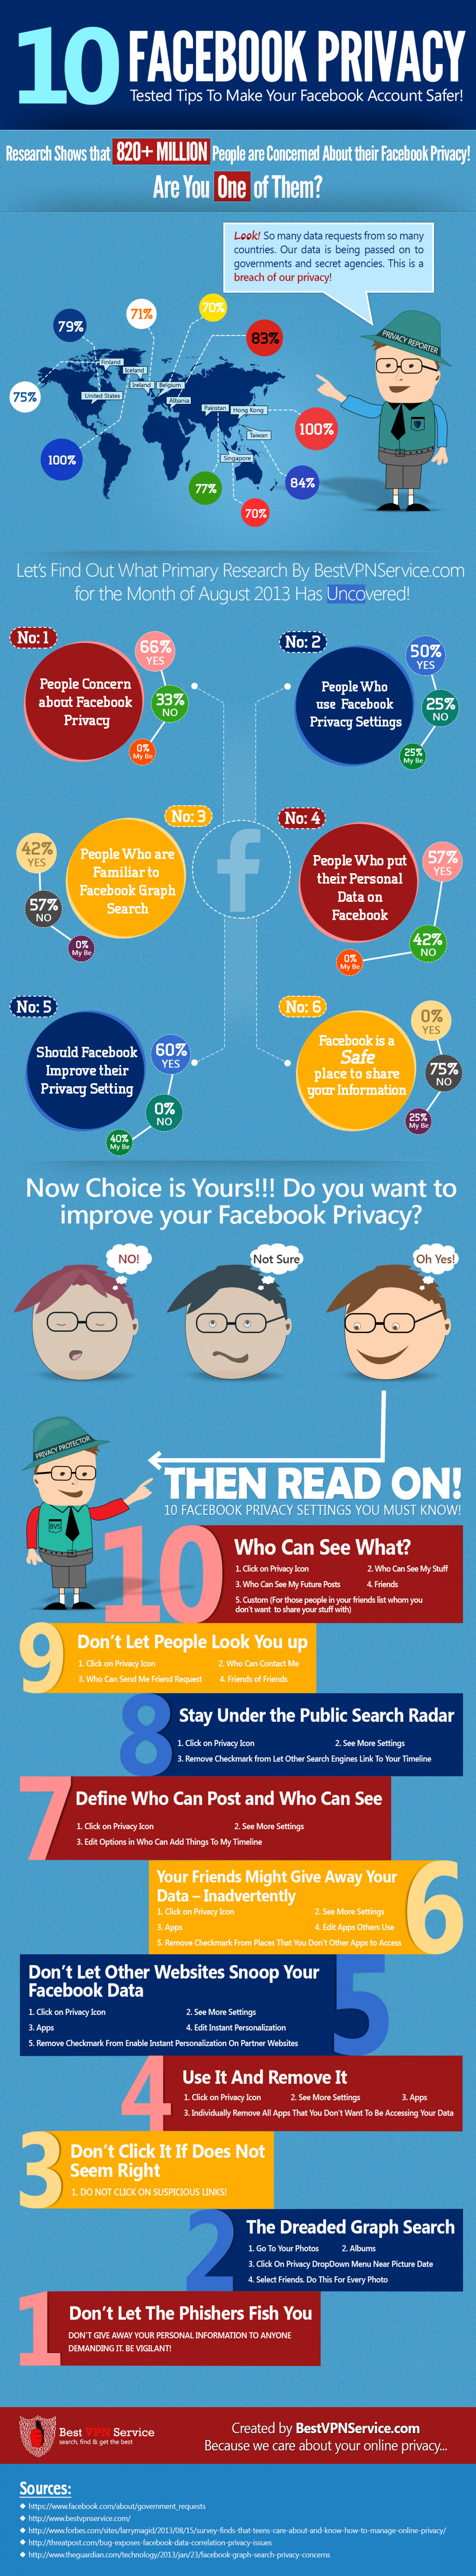 10 Facebook Privacy Tips  Infographic